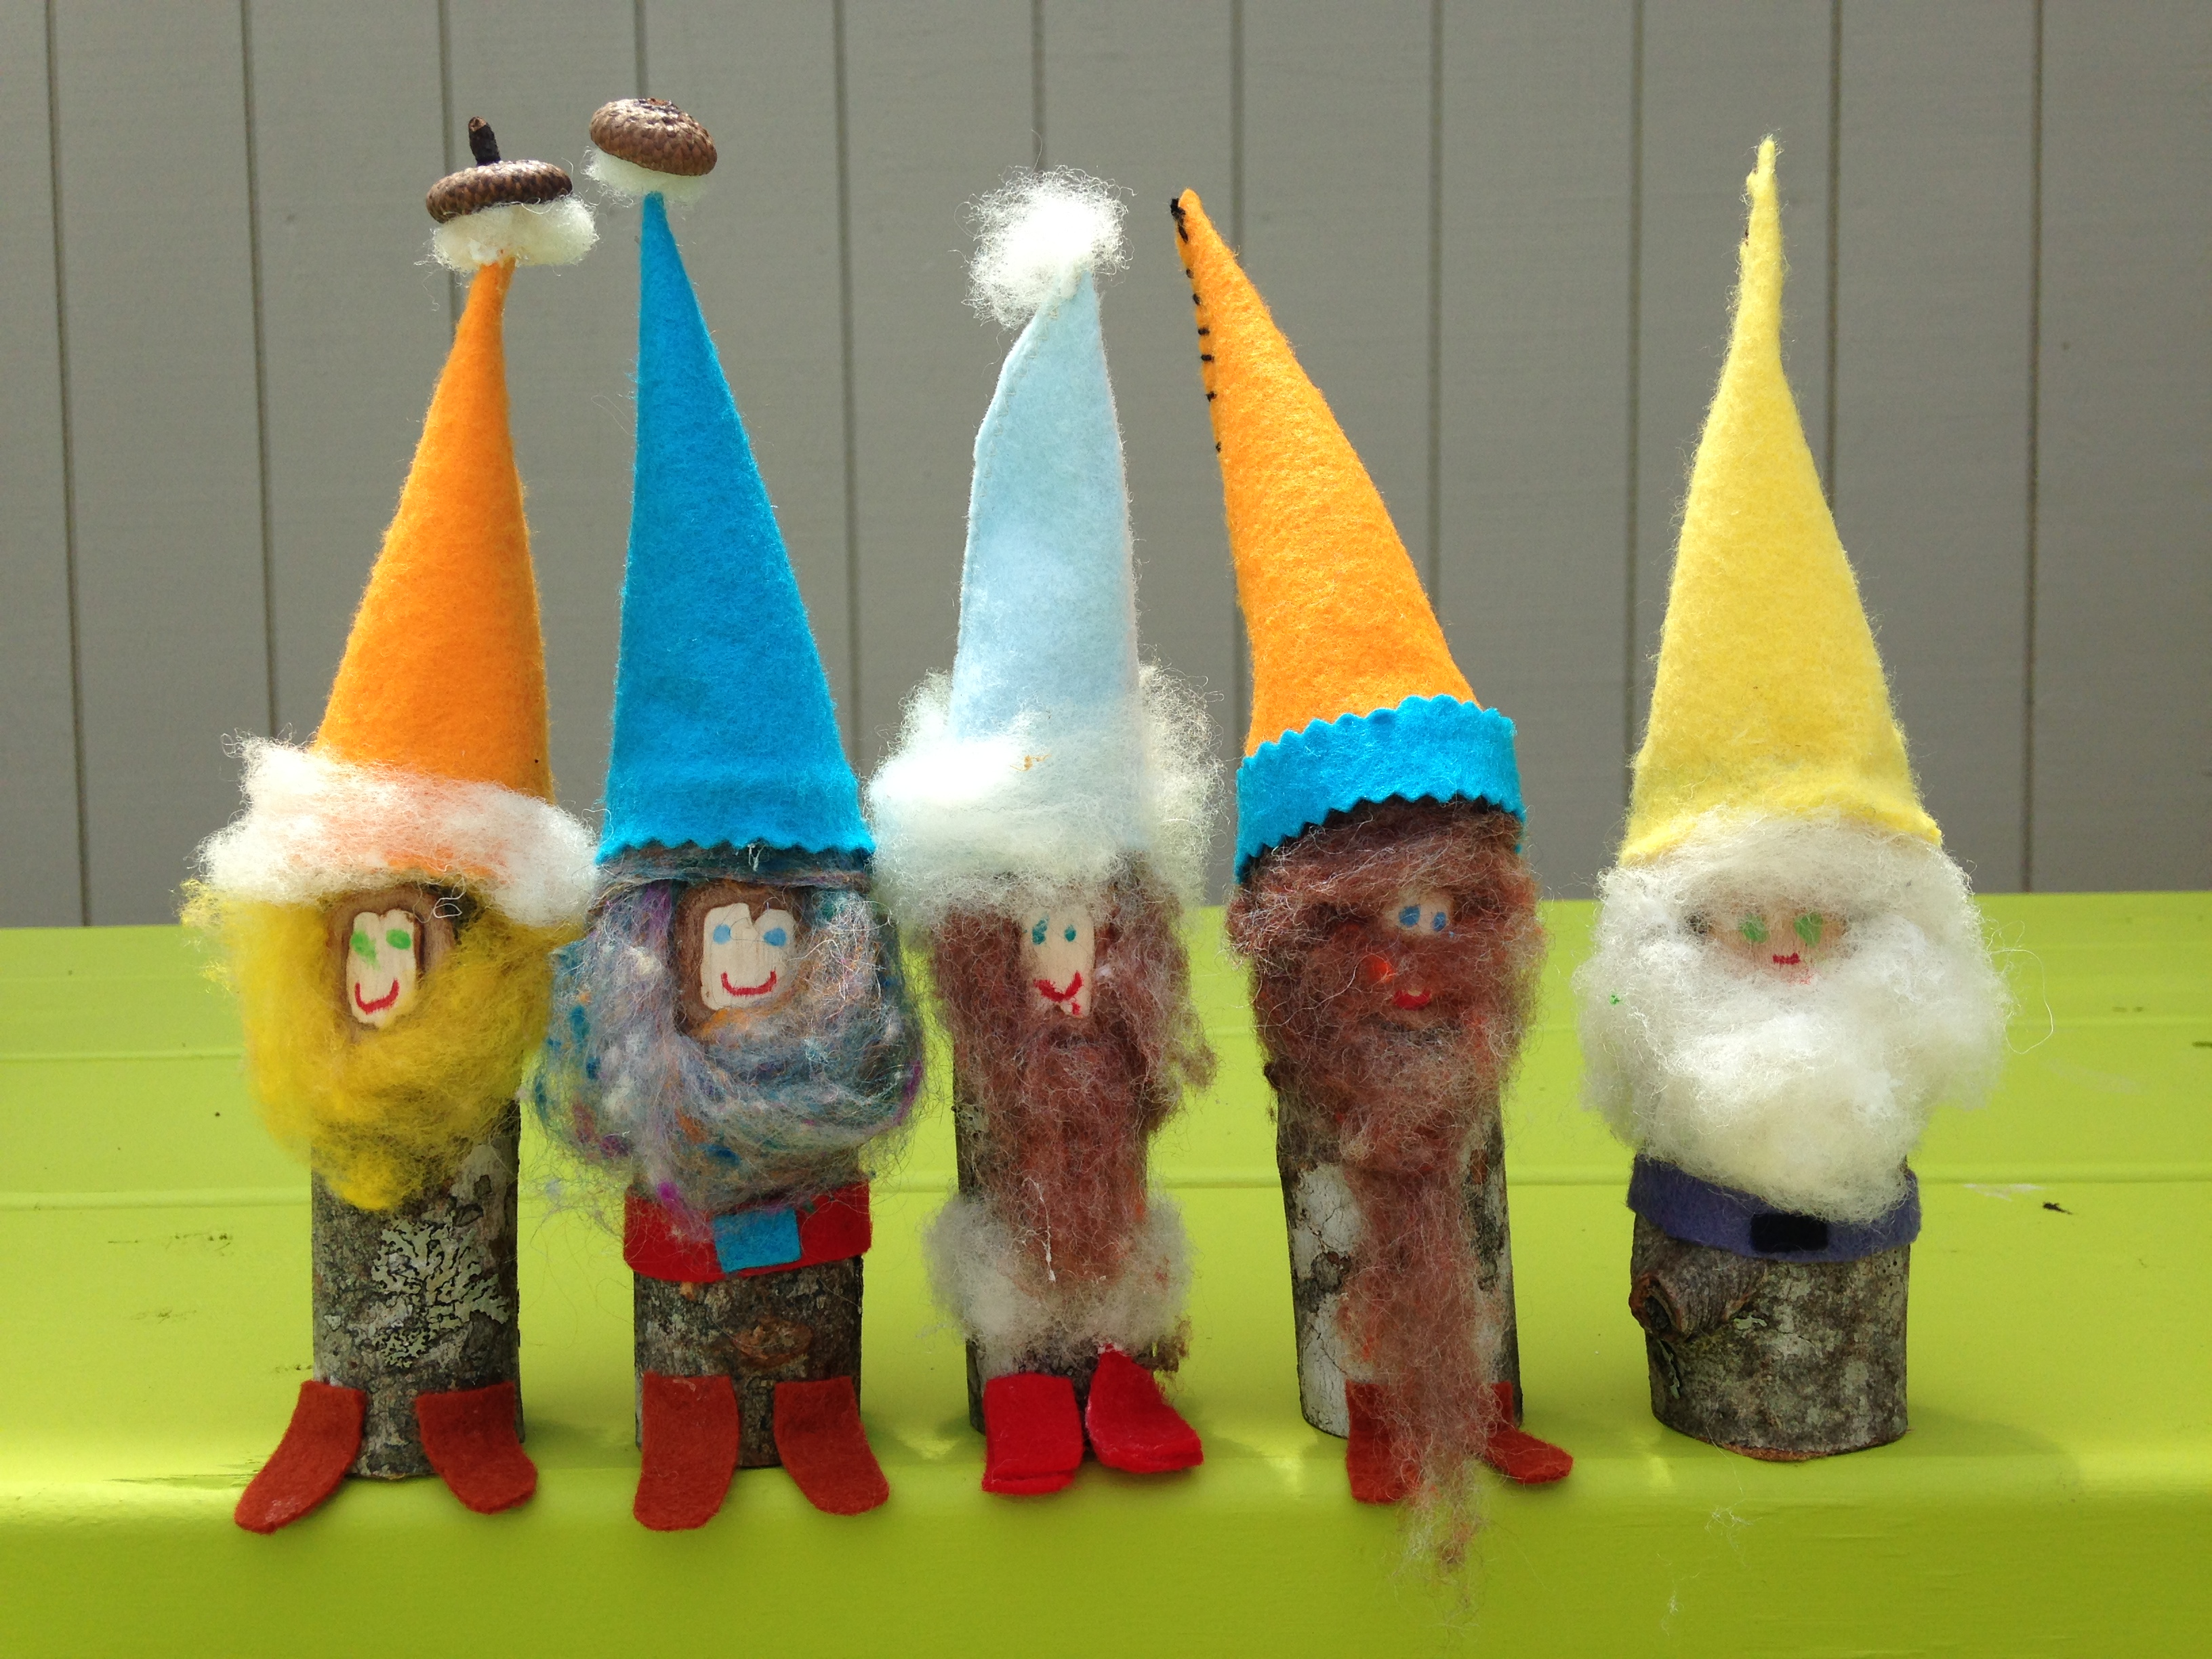 We love gnomes!